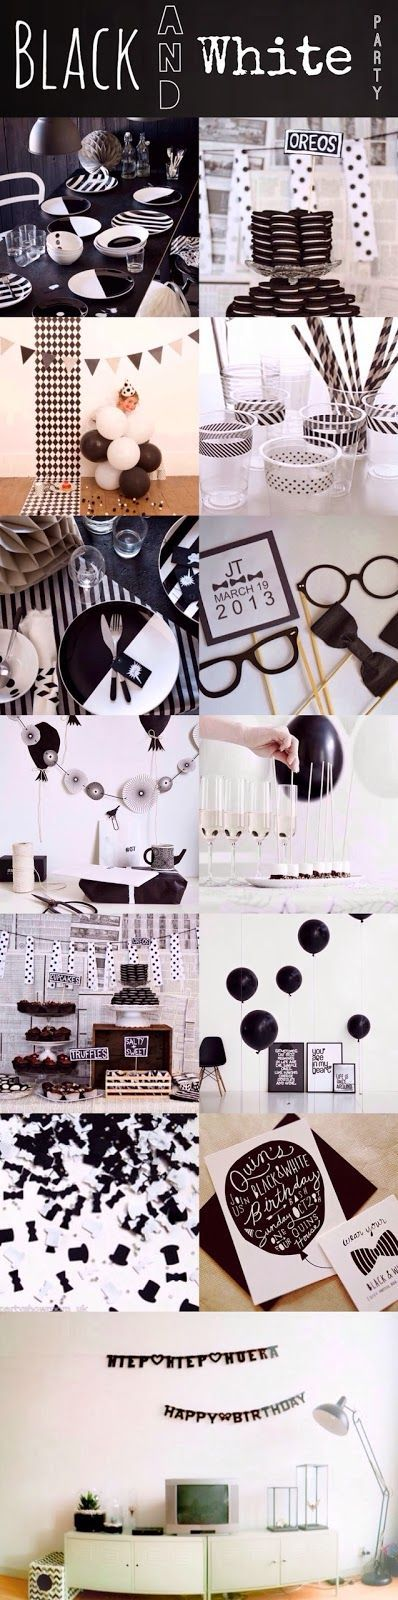 Have or attend a black and white party.